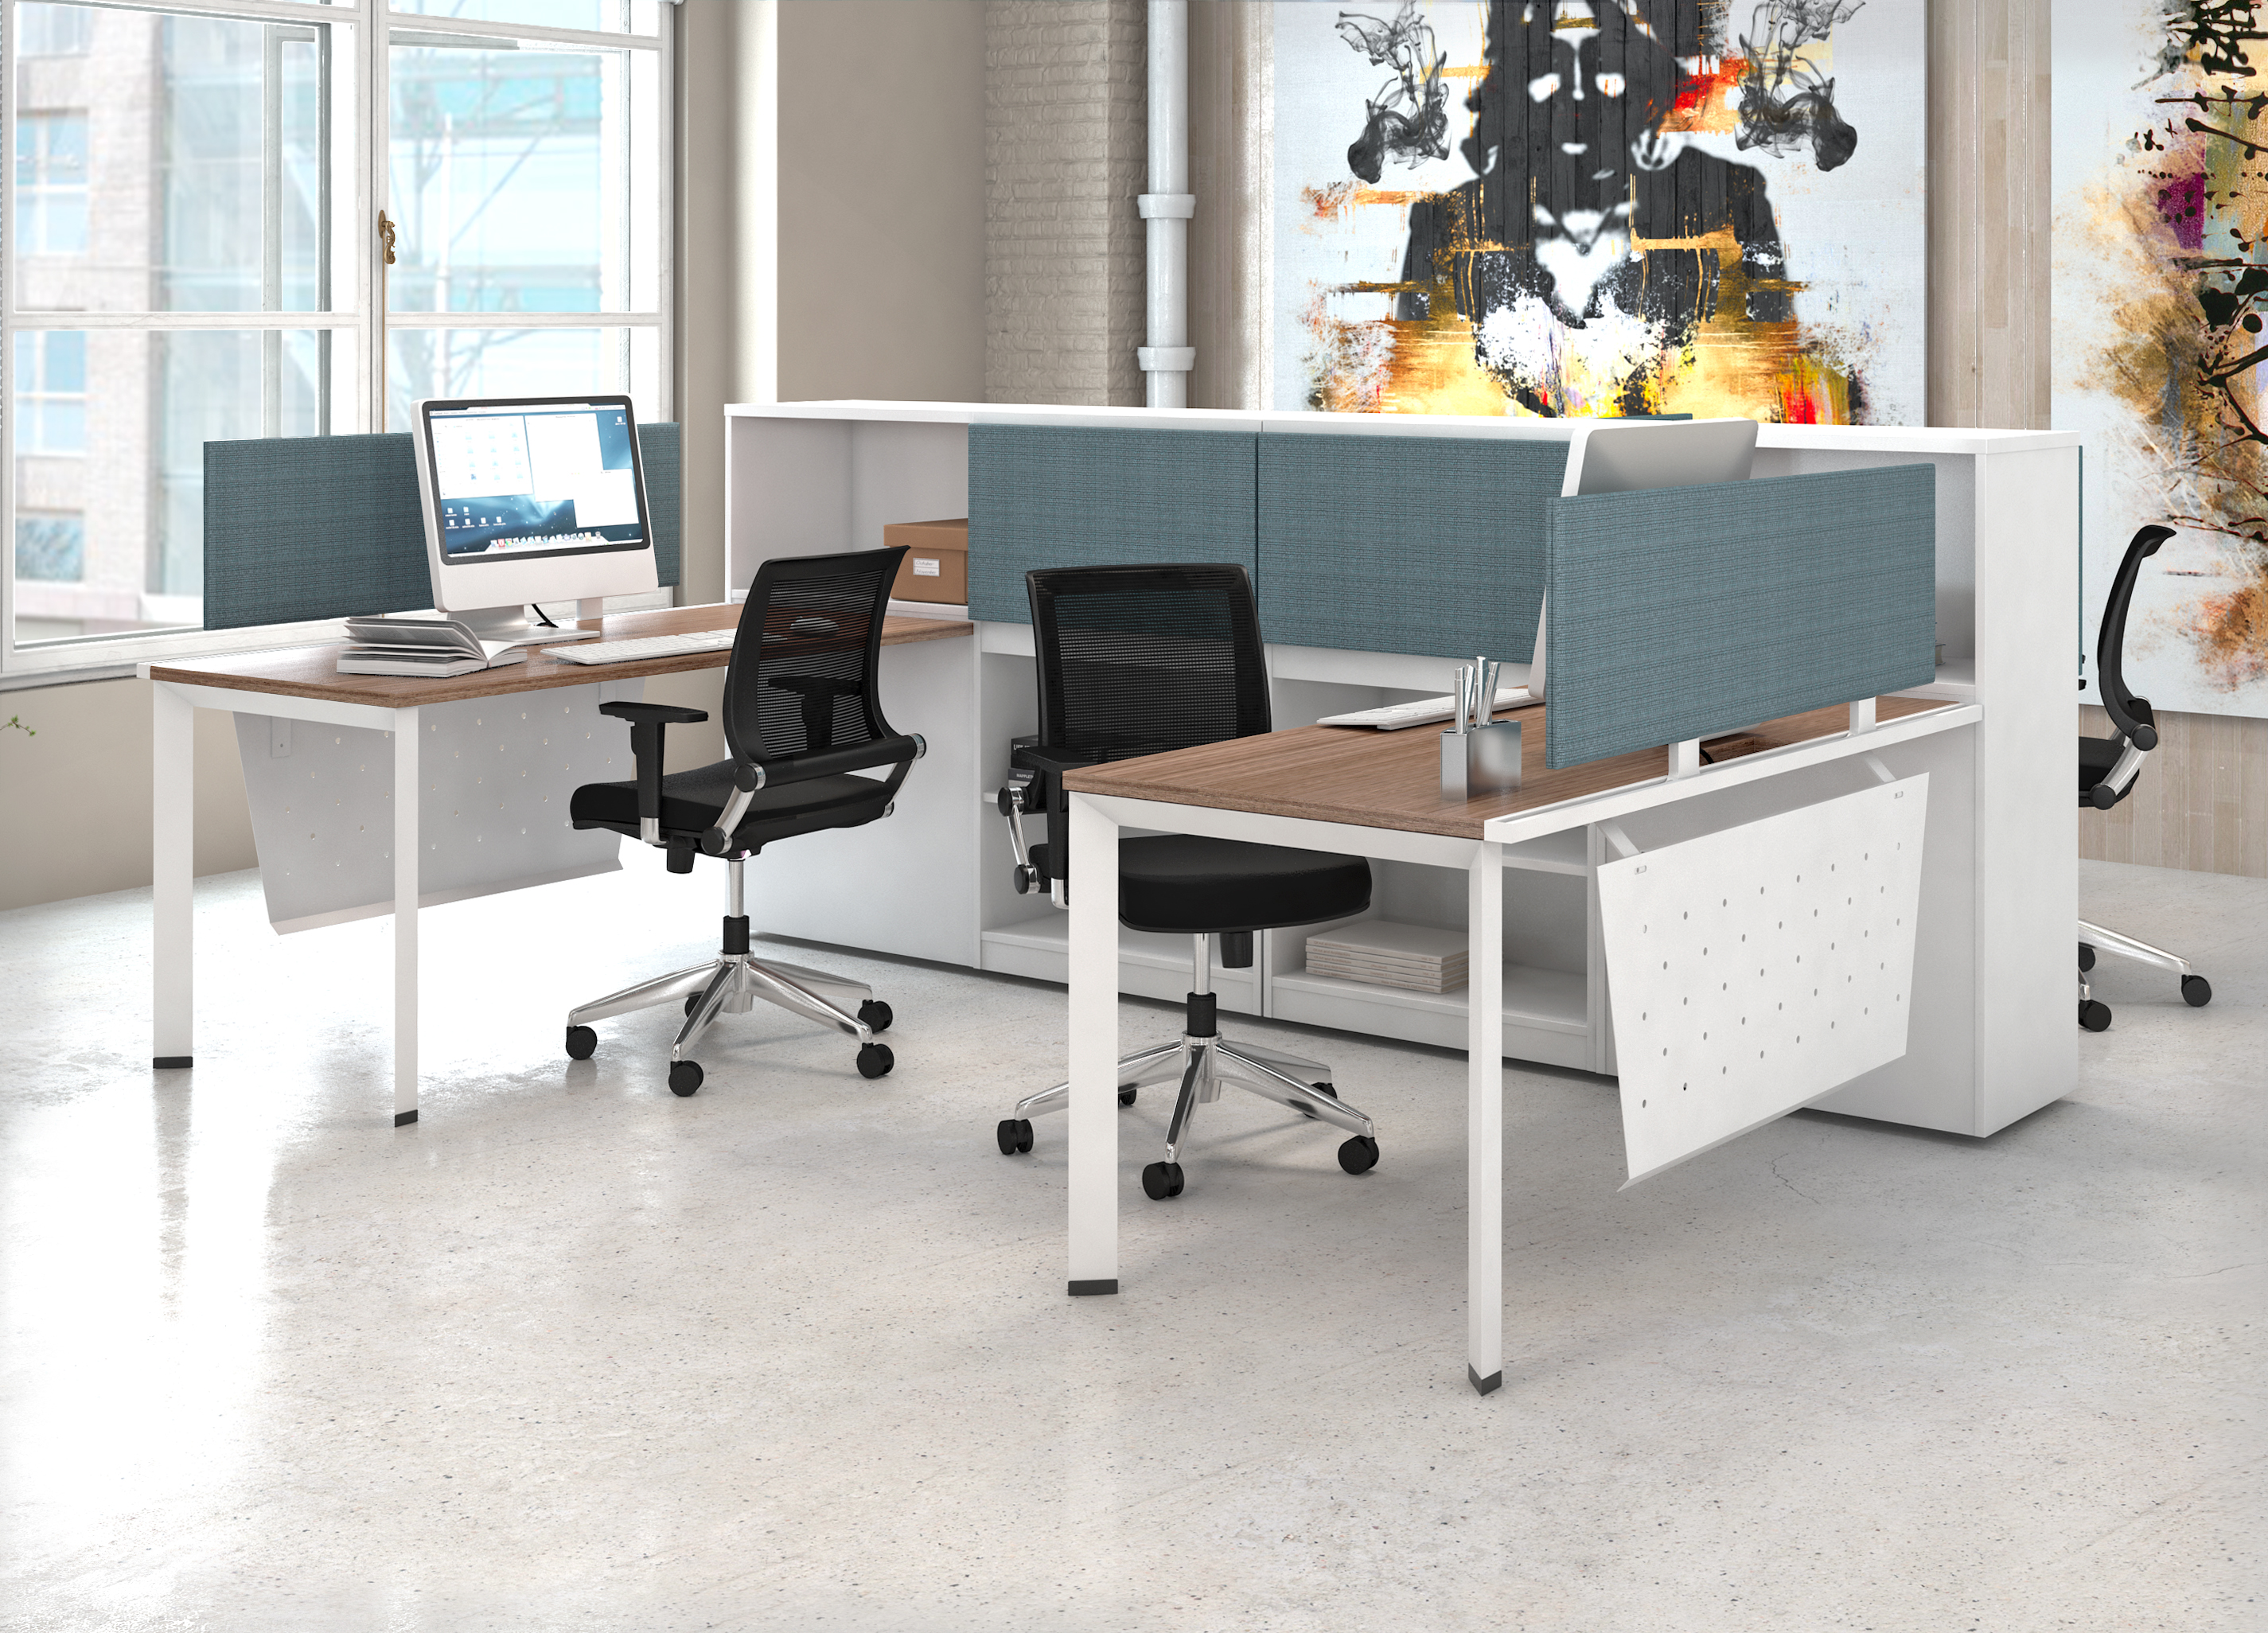 New Simple Clean Desking Solutions!